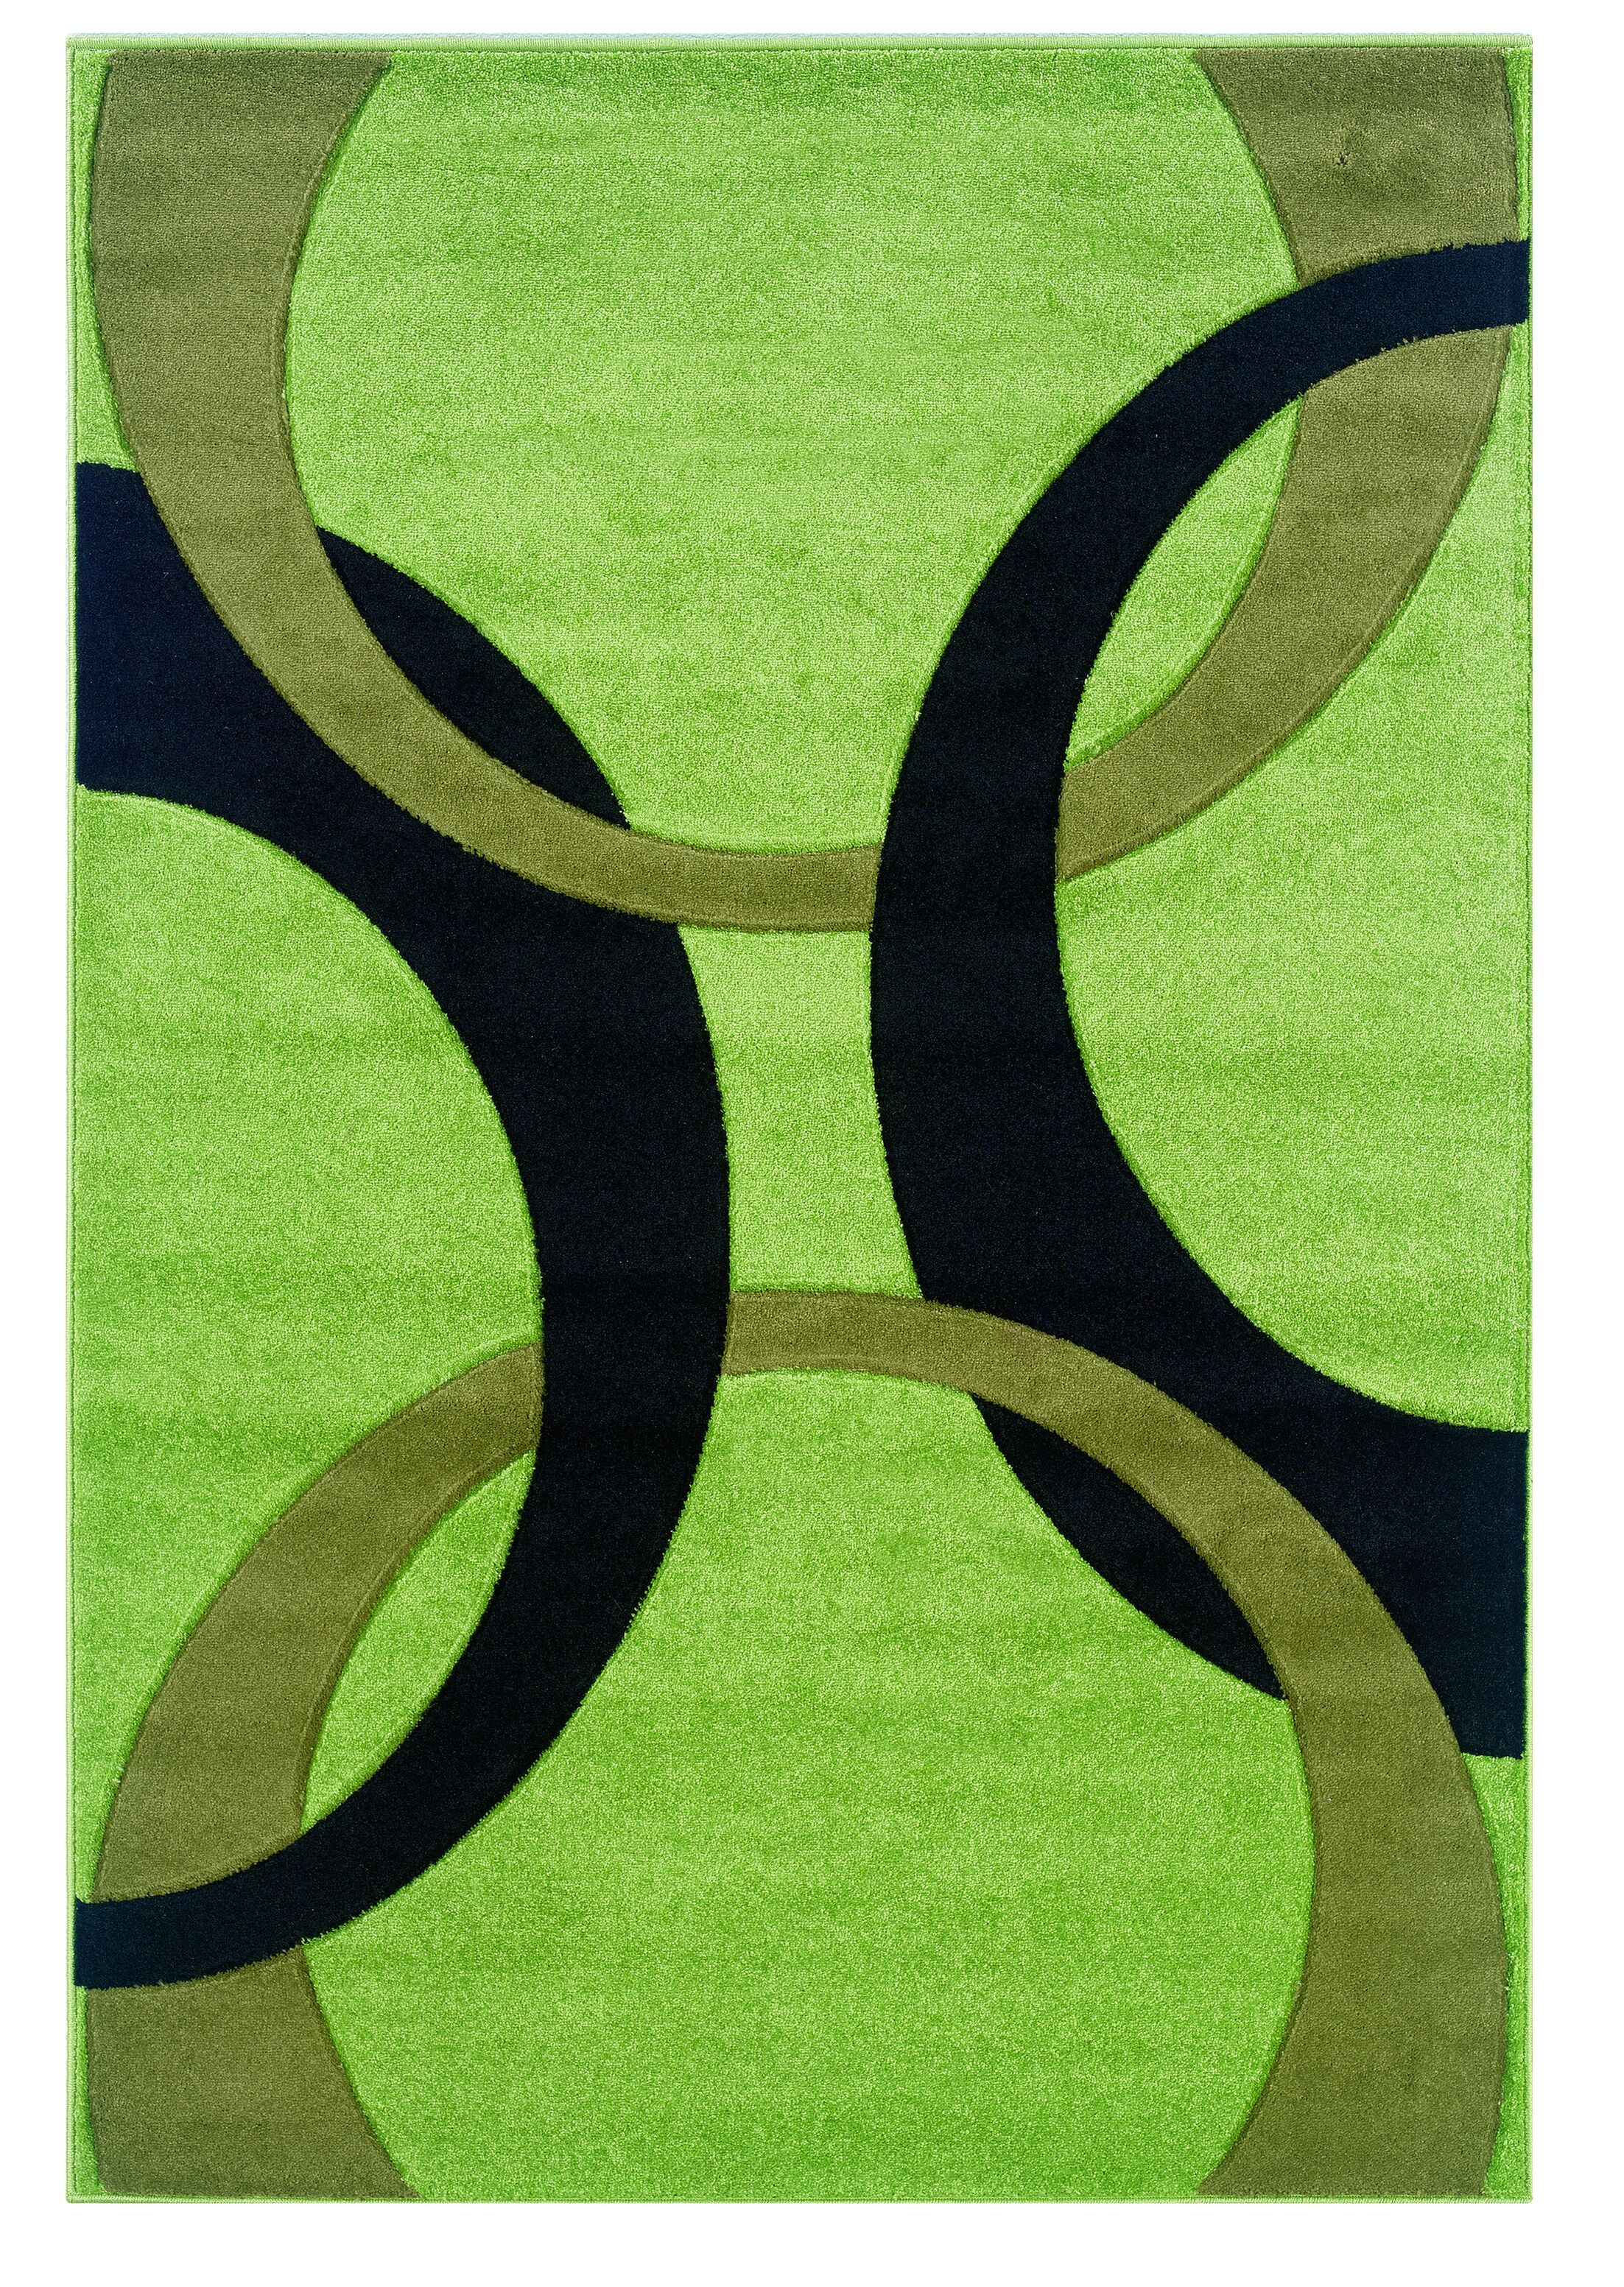 Manchester Hand-Woven Green/Black Area Rug Rug Size: Rectangle 5' x 7'7